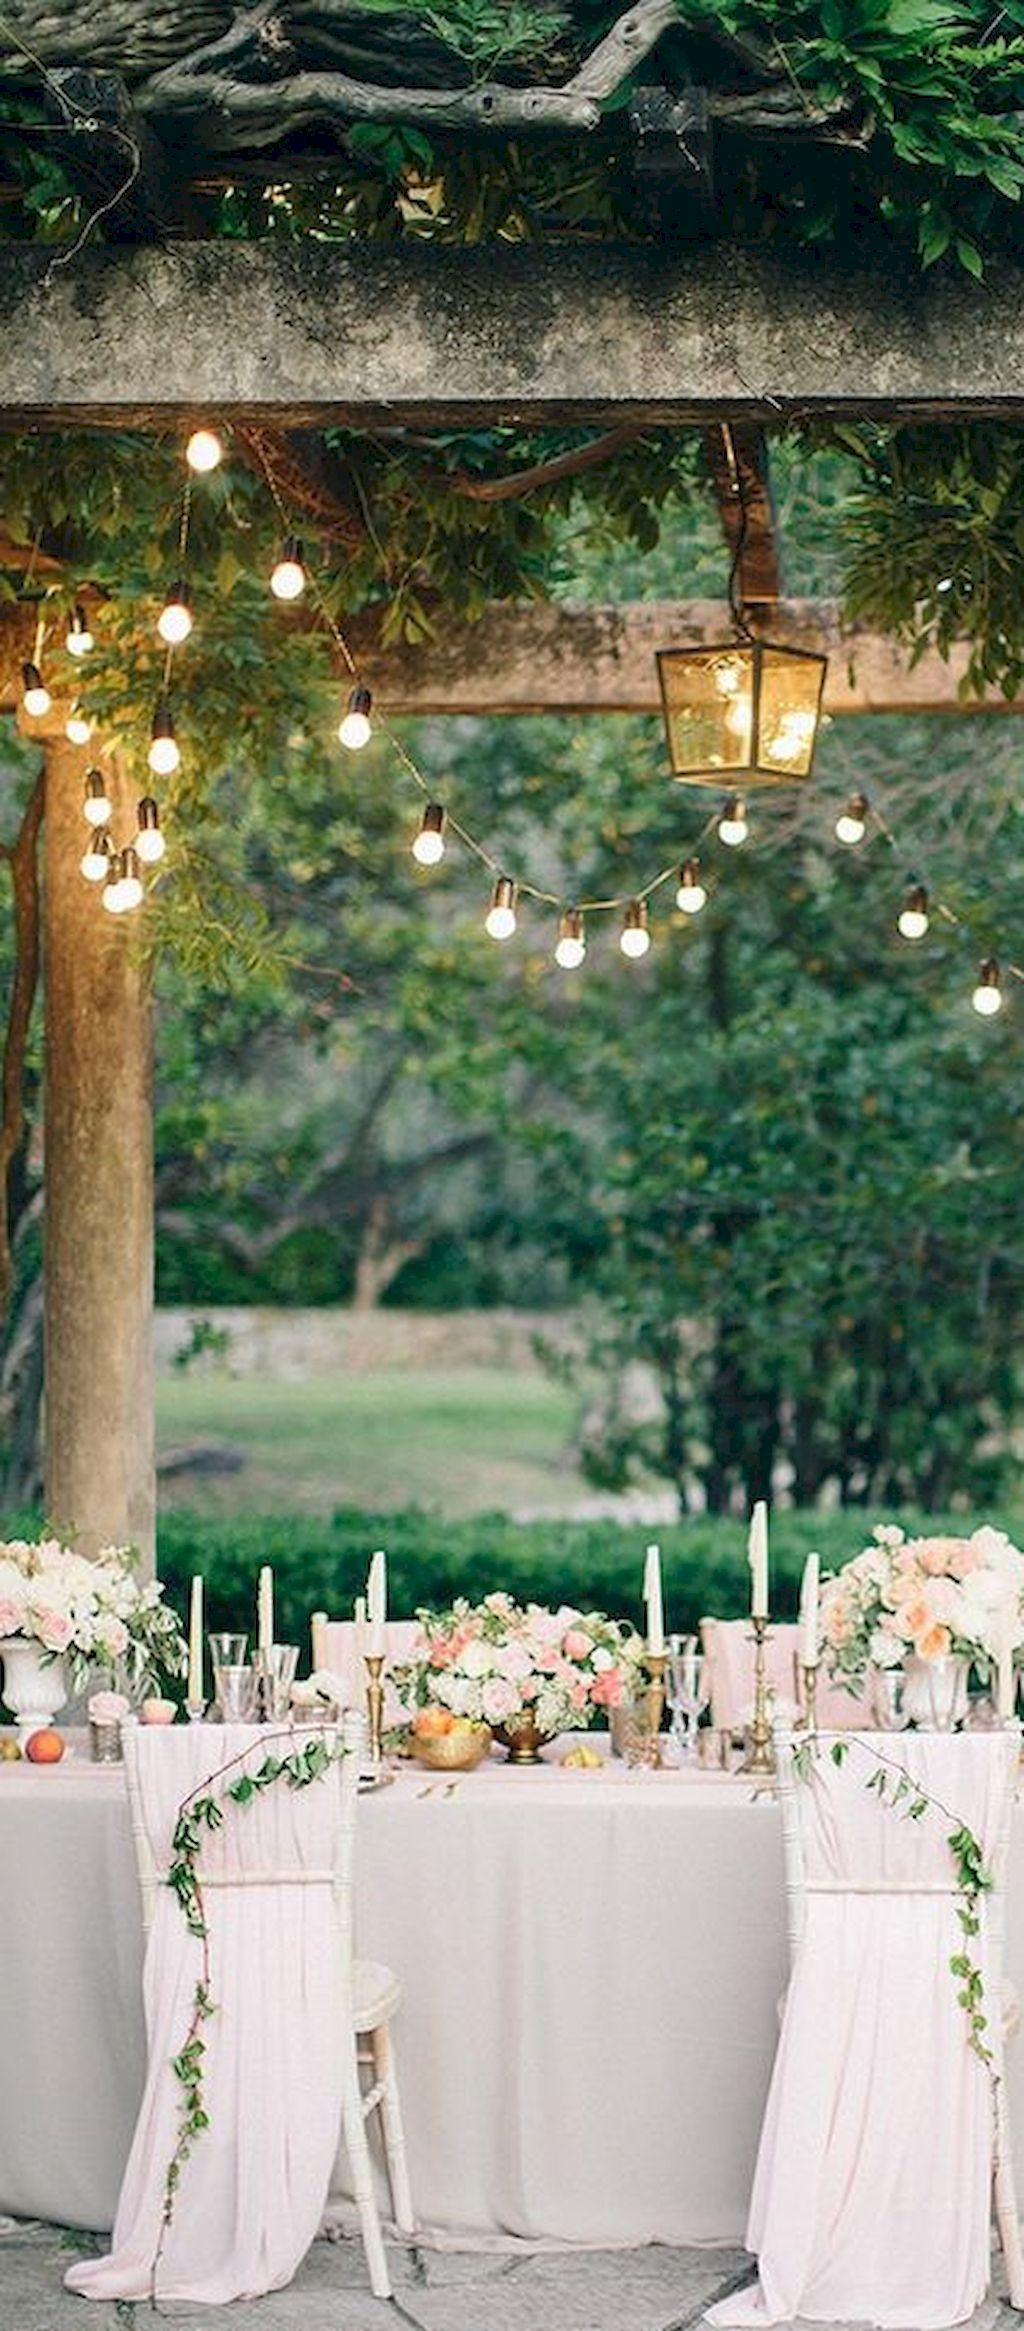 81 elegant outdoor vineyard wedding decorations ideas vineyard 81 elegant outdoor vineyard wedding decorations ideas bitecloth junglespirit Choice Image